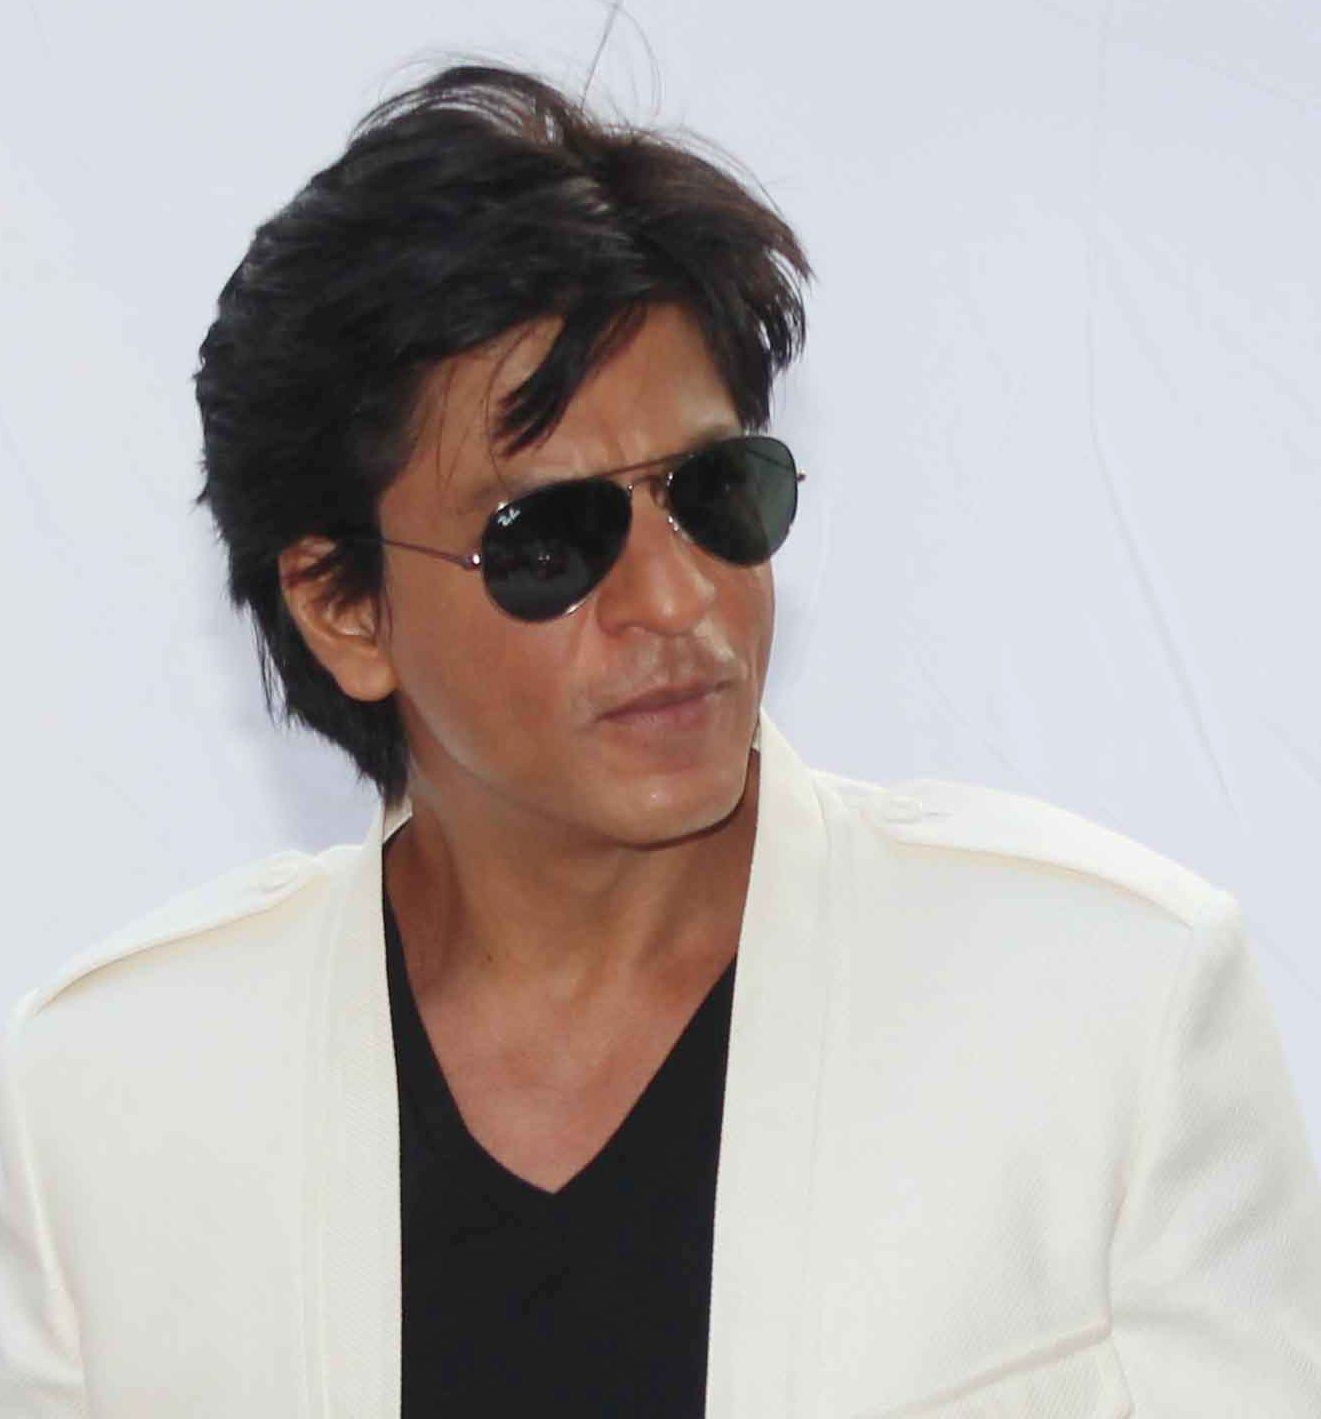 Shahrukh Khan charms audiences in Mumbai with his wit and magnetic presence